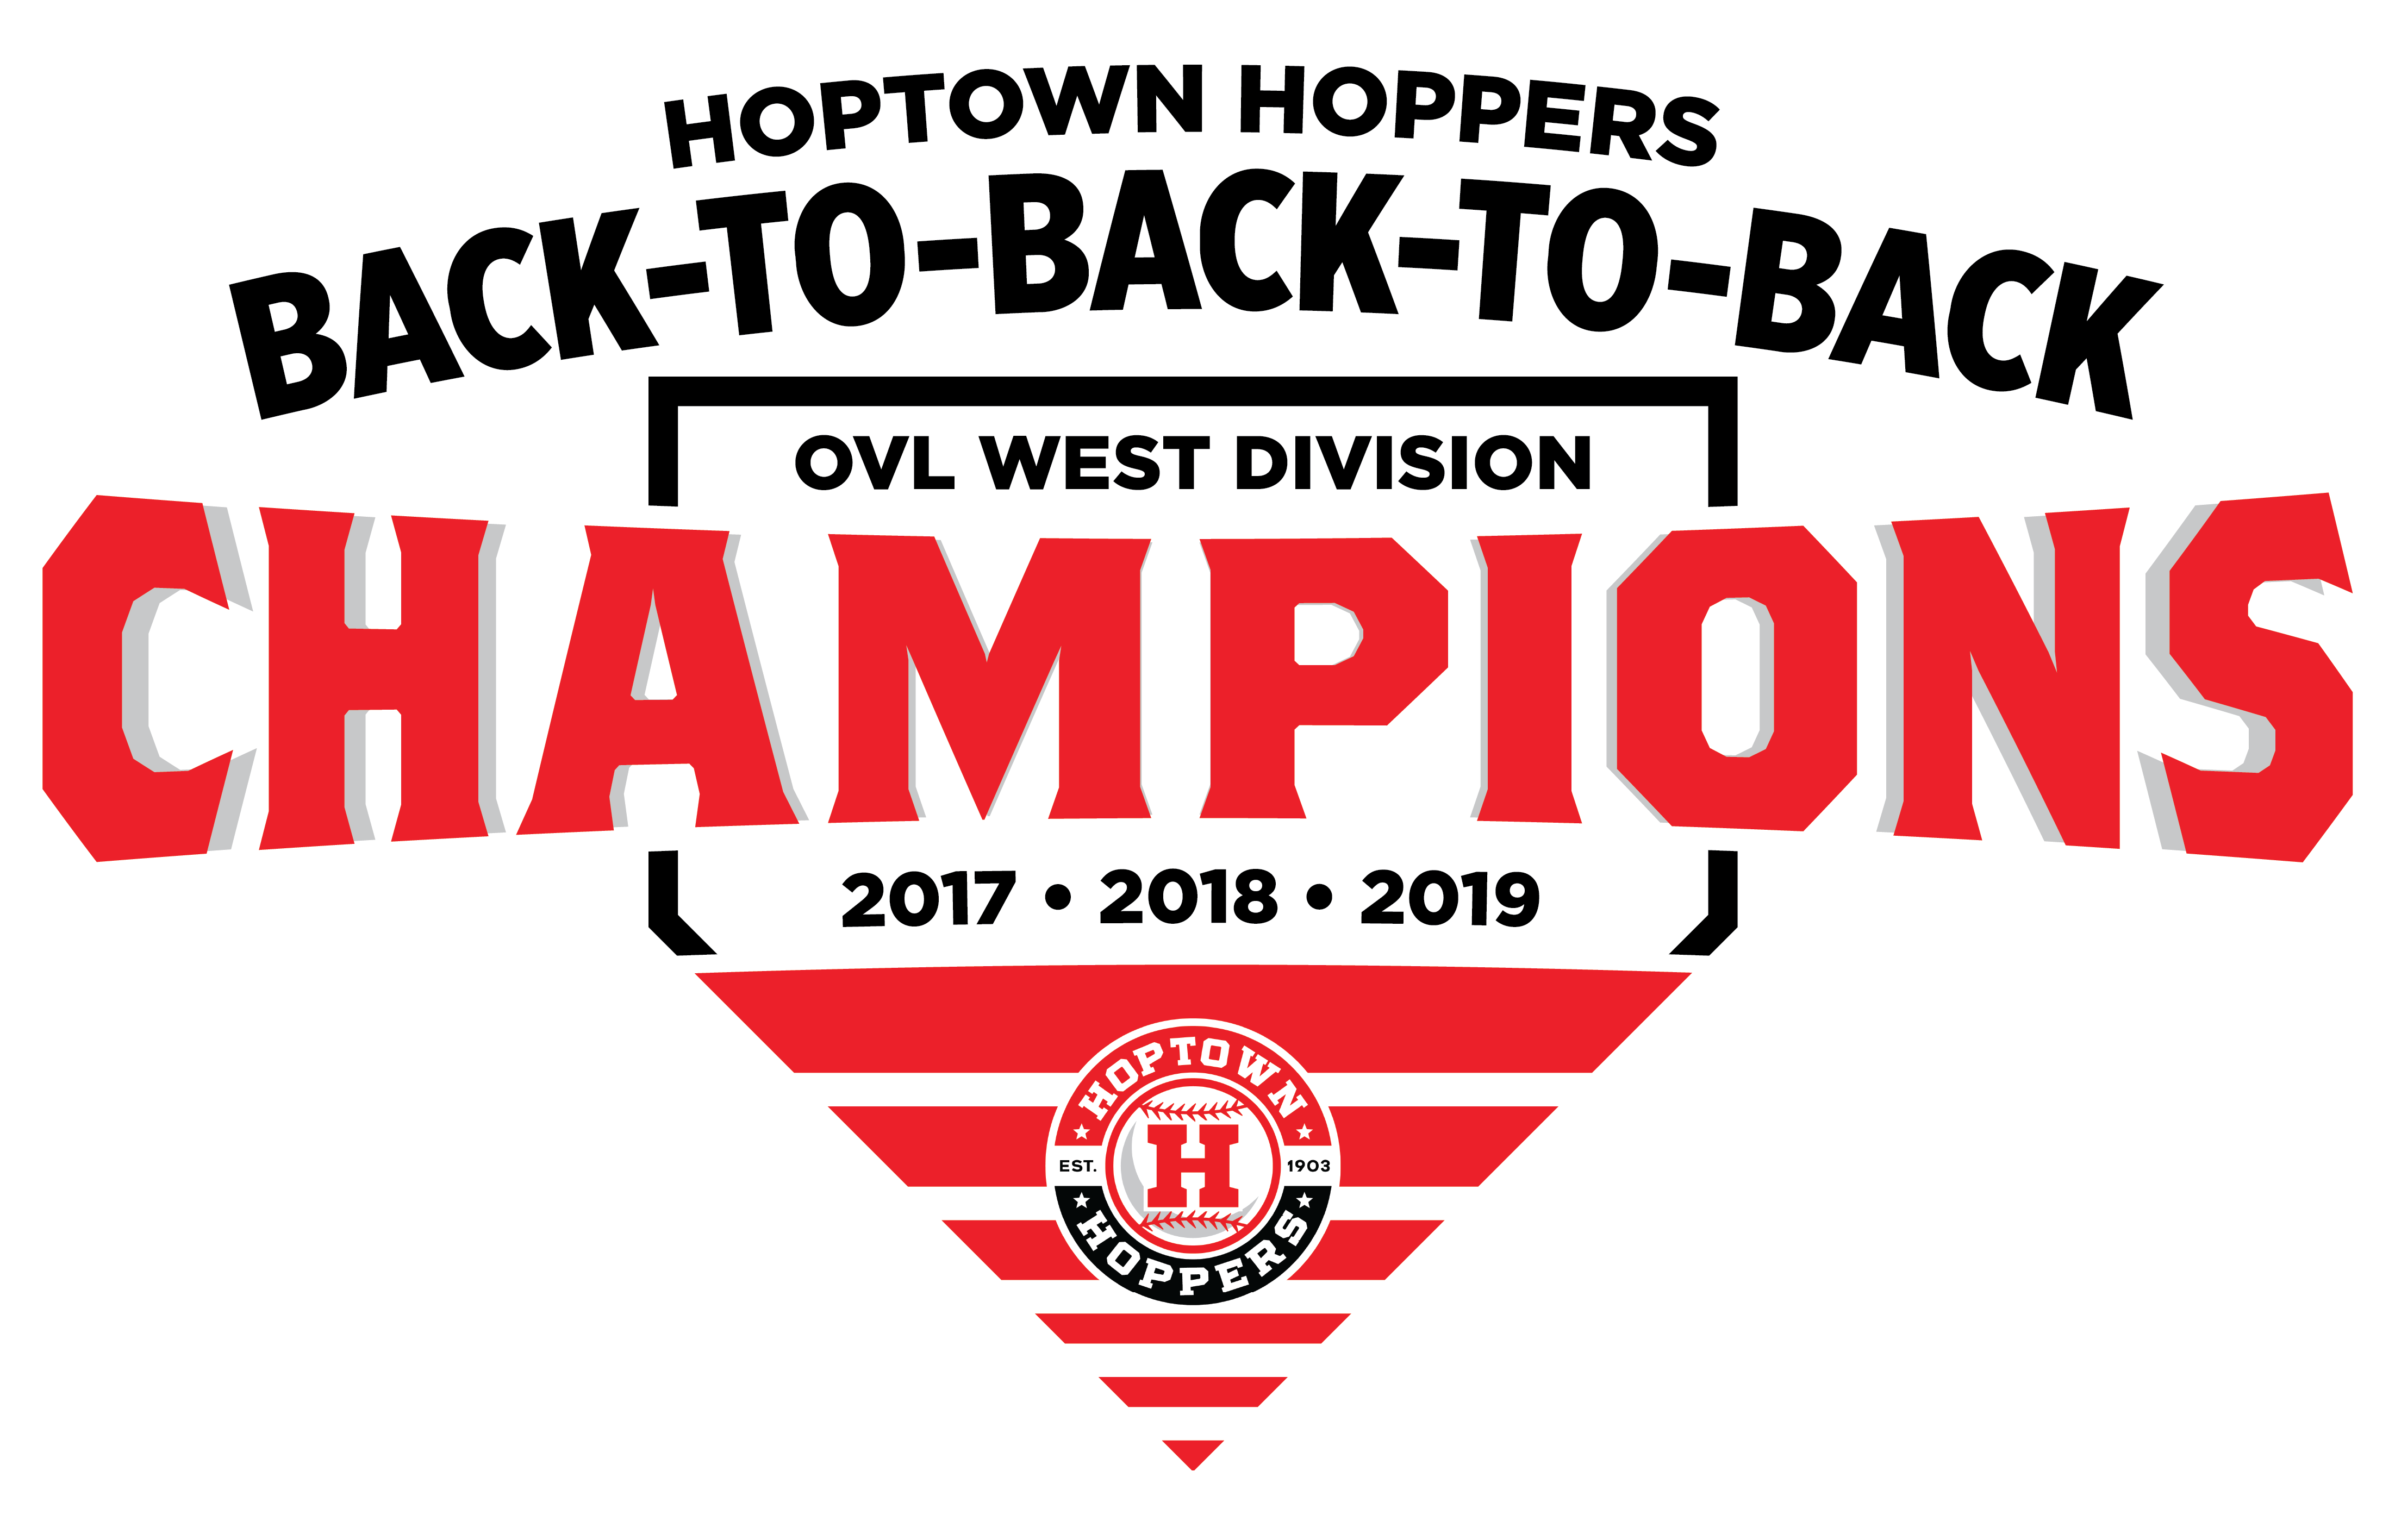 About Hoptown Hoppers – Hoptown Hoppers